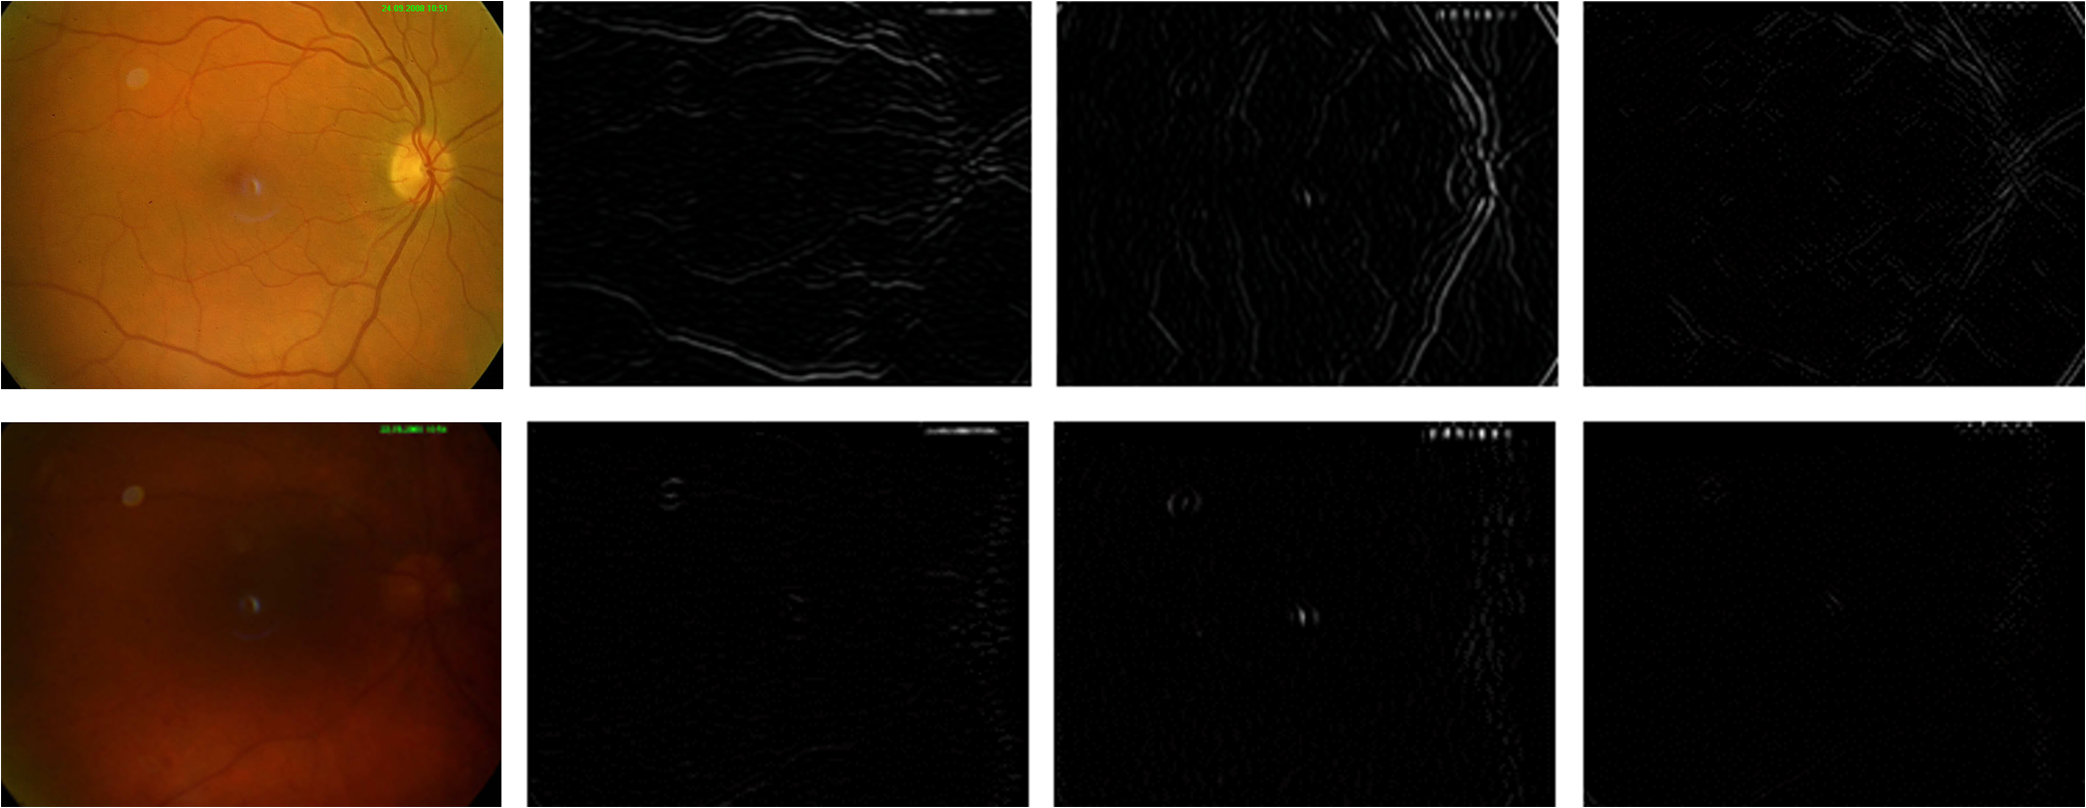 Retinal image quality assessment based on image clarity and